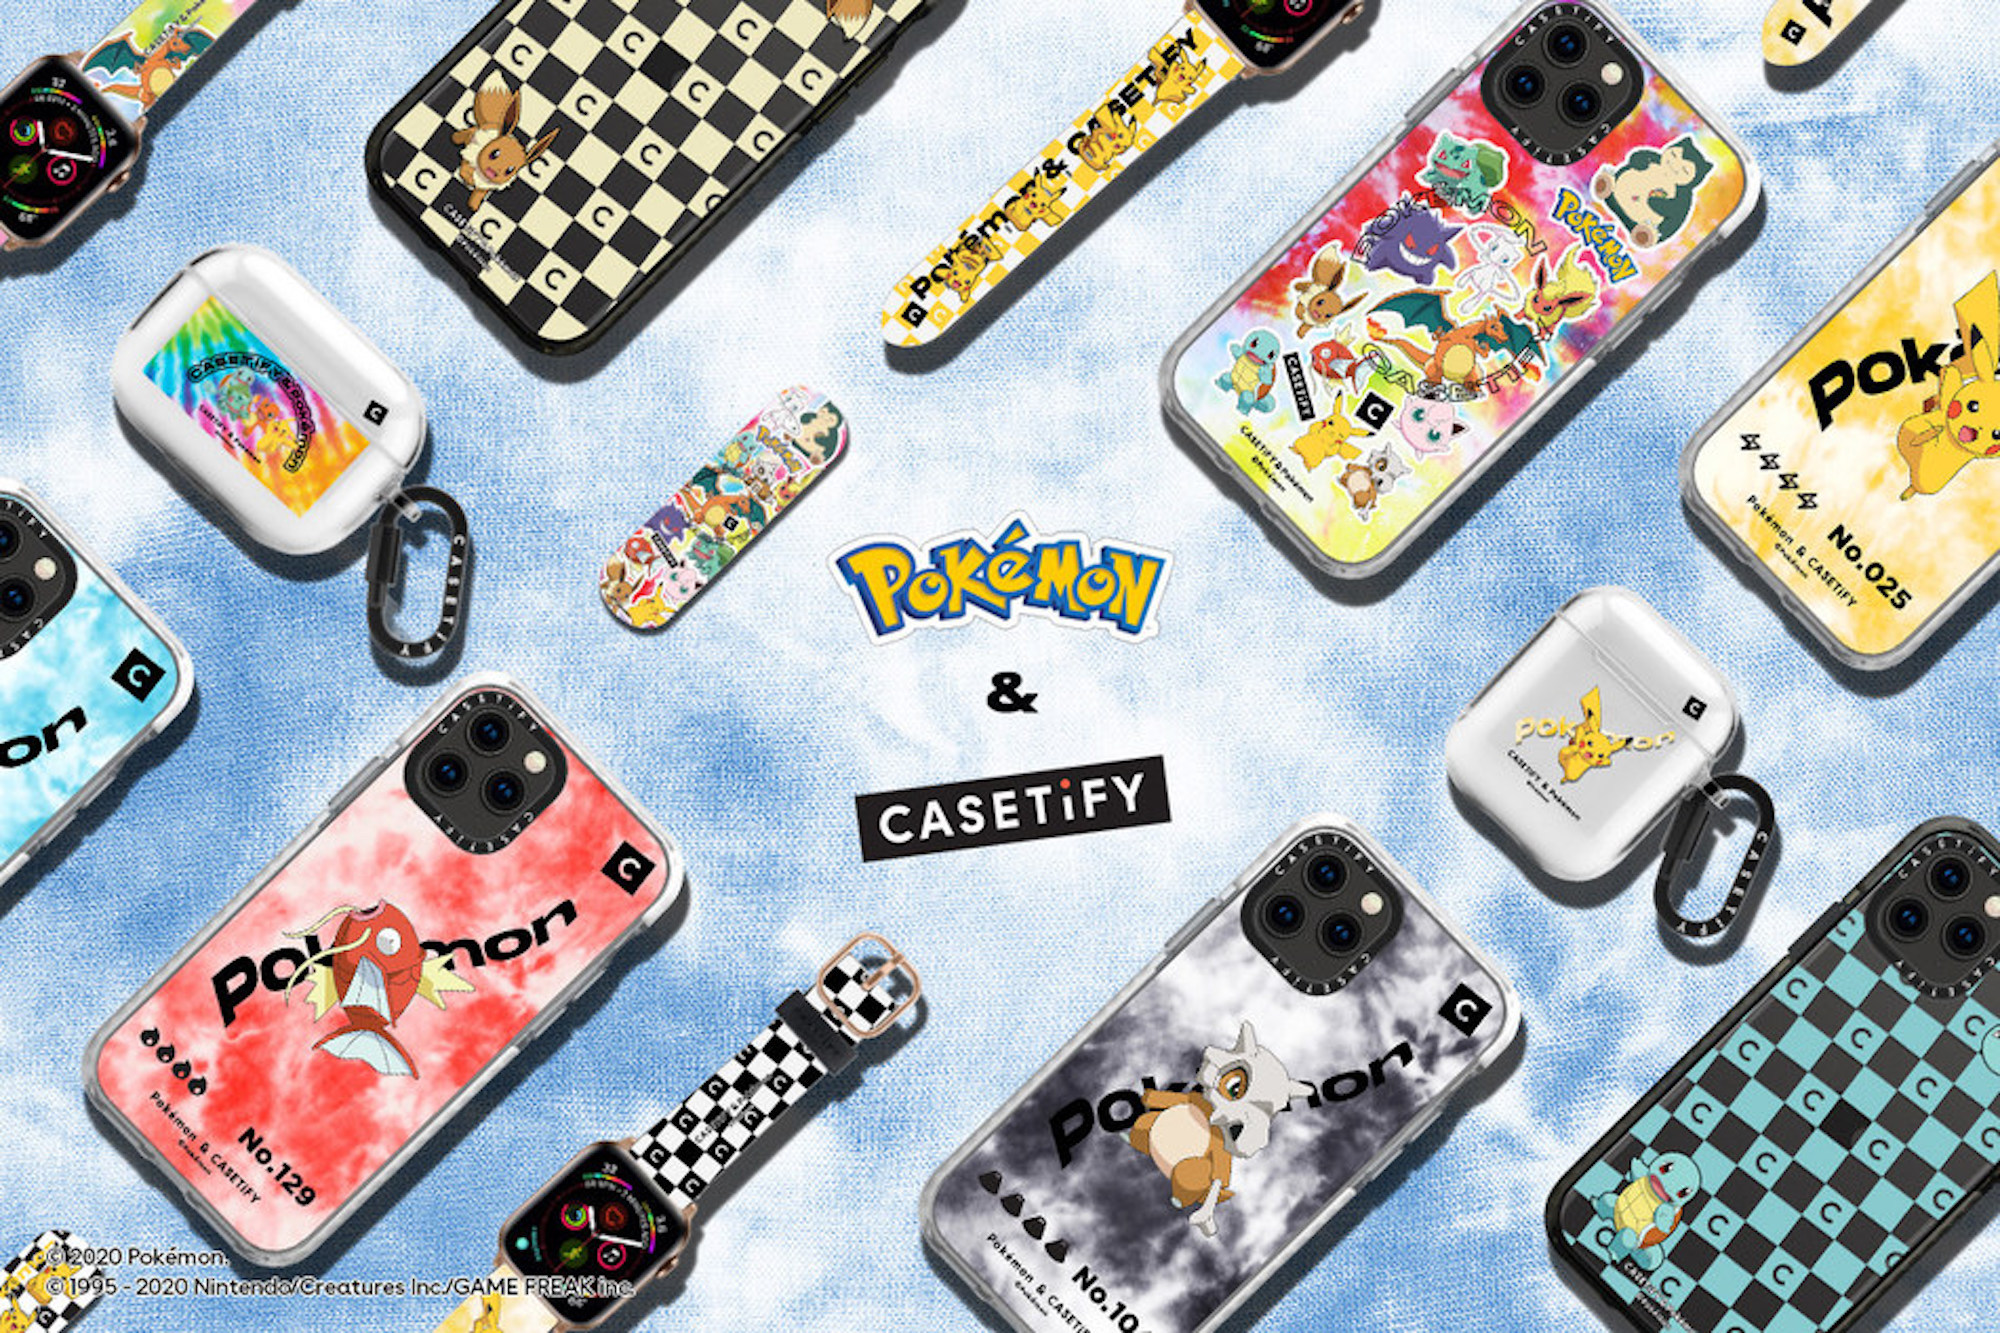 CASETiFY and Pokemon